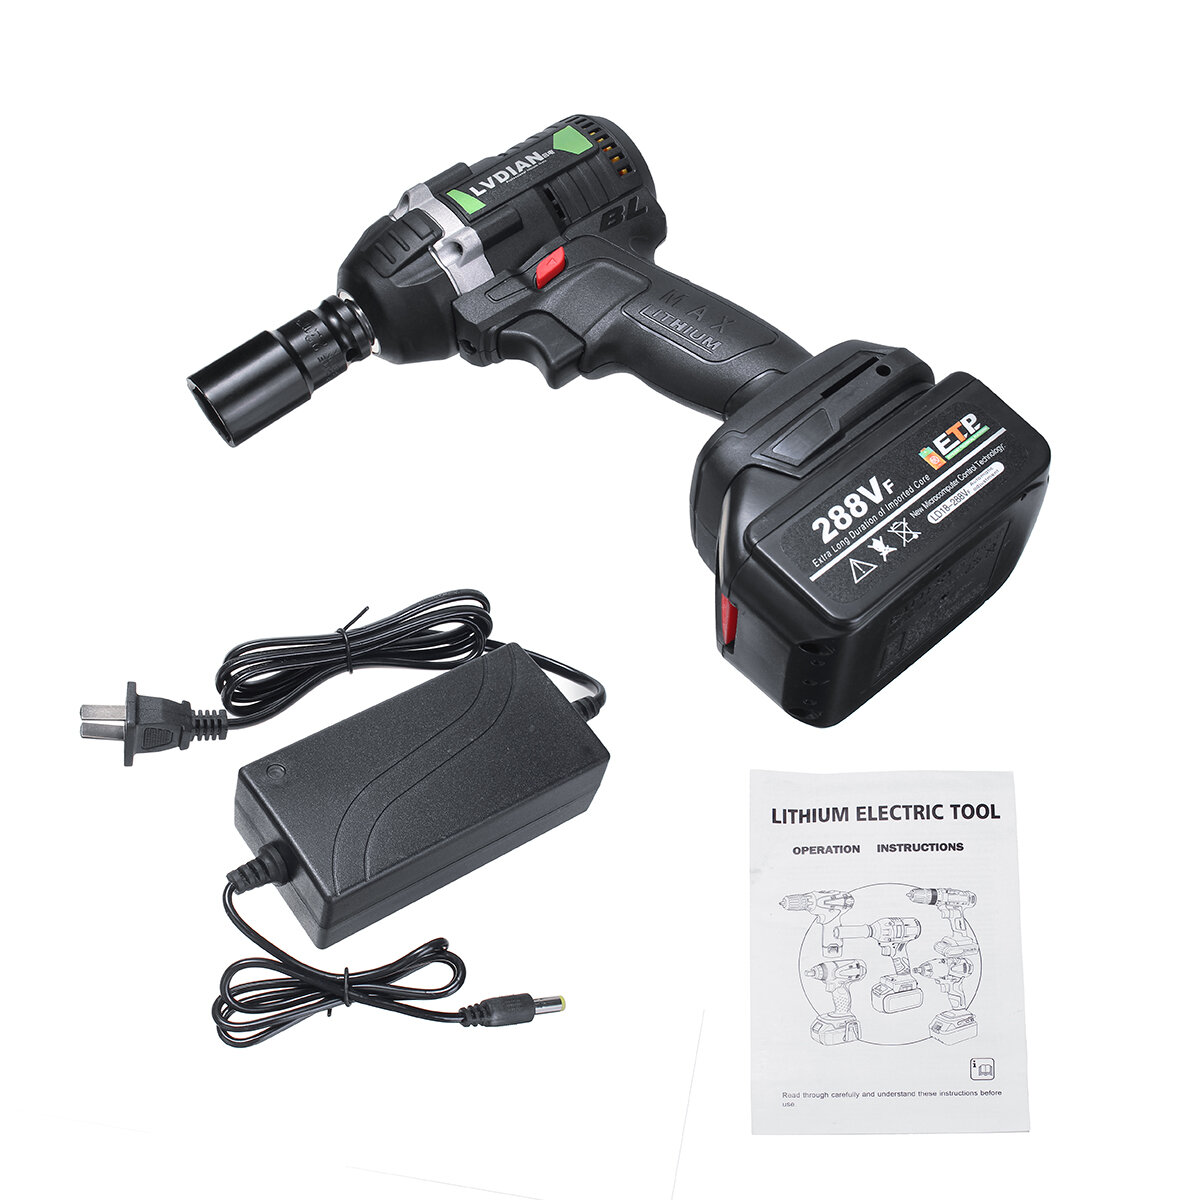 288VF 630N.m Brushless Cordless Electric Impact Wrench 19800mAh Powerful Tool